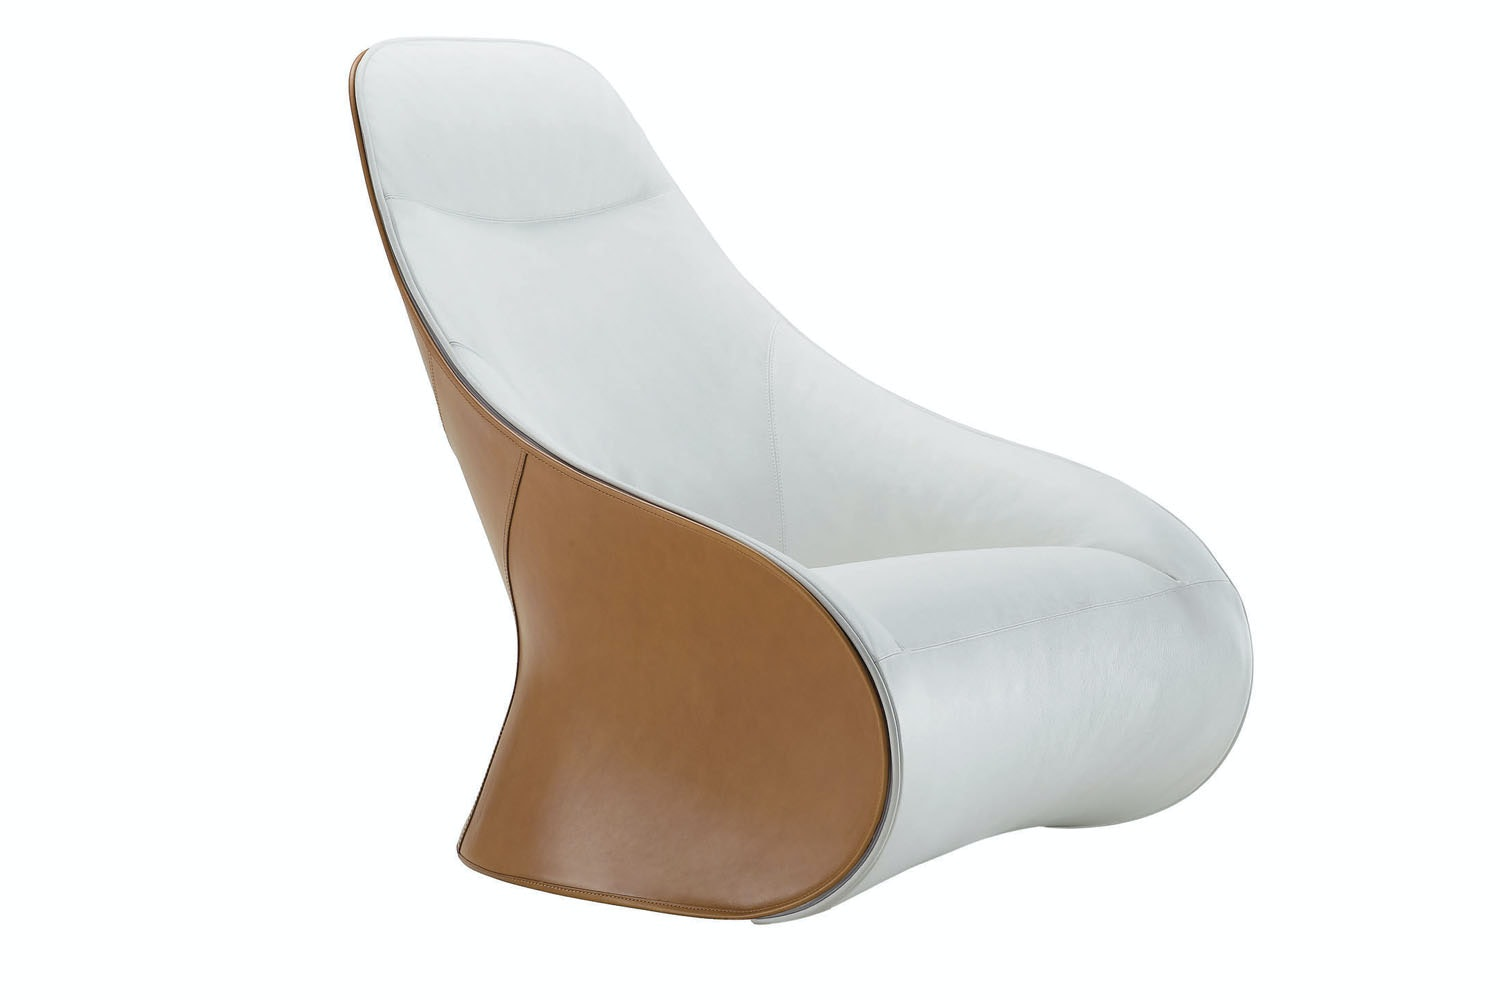 Derby Armchair & Ottoman by Noe Duchaufour Lawrance for Zanotta